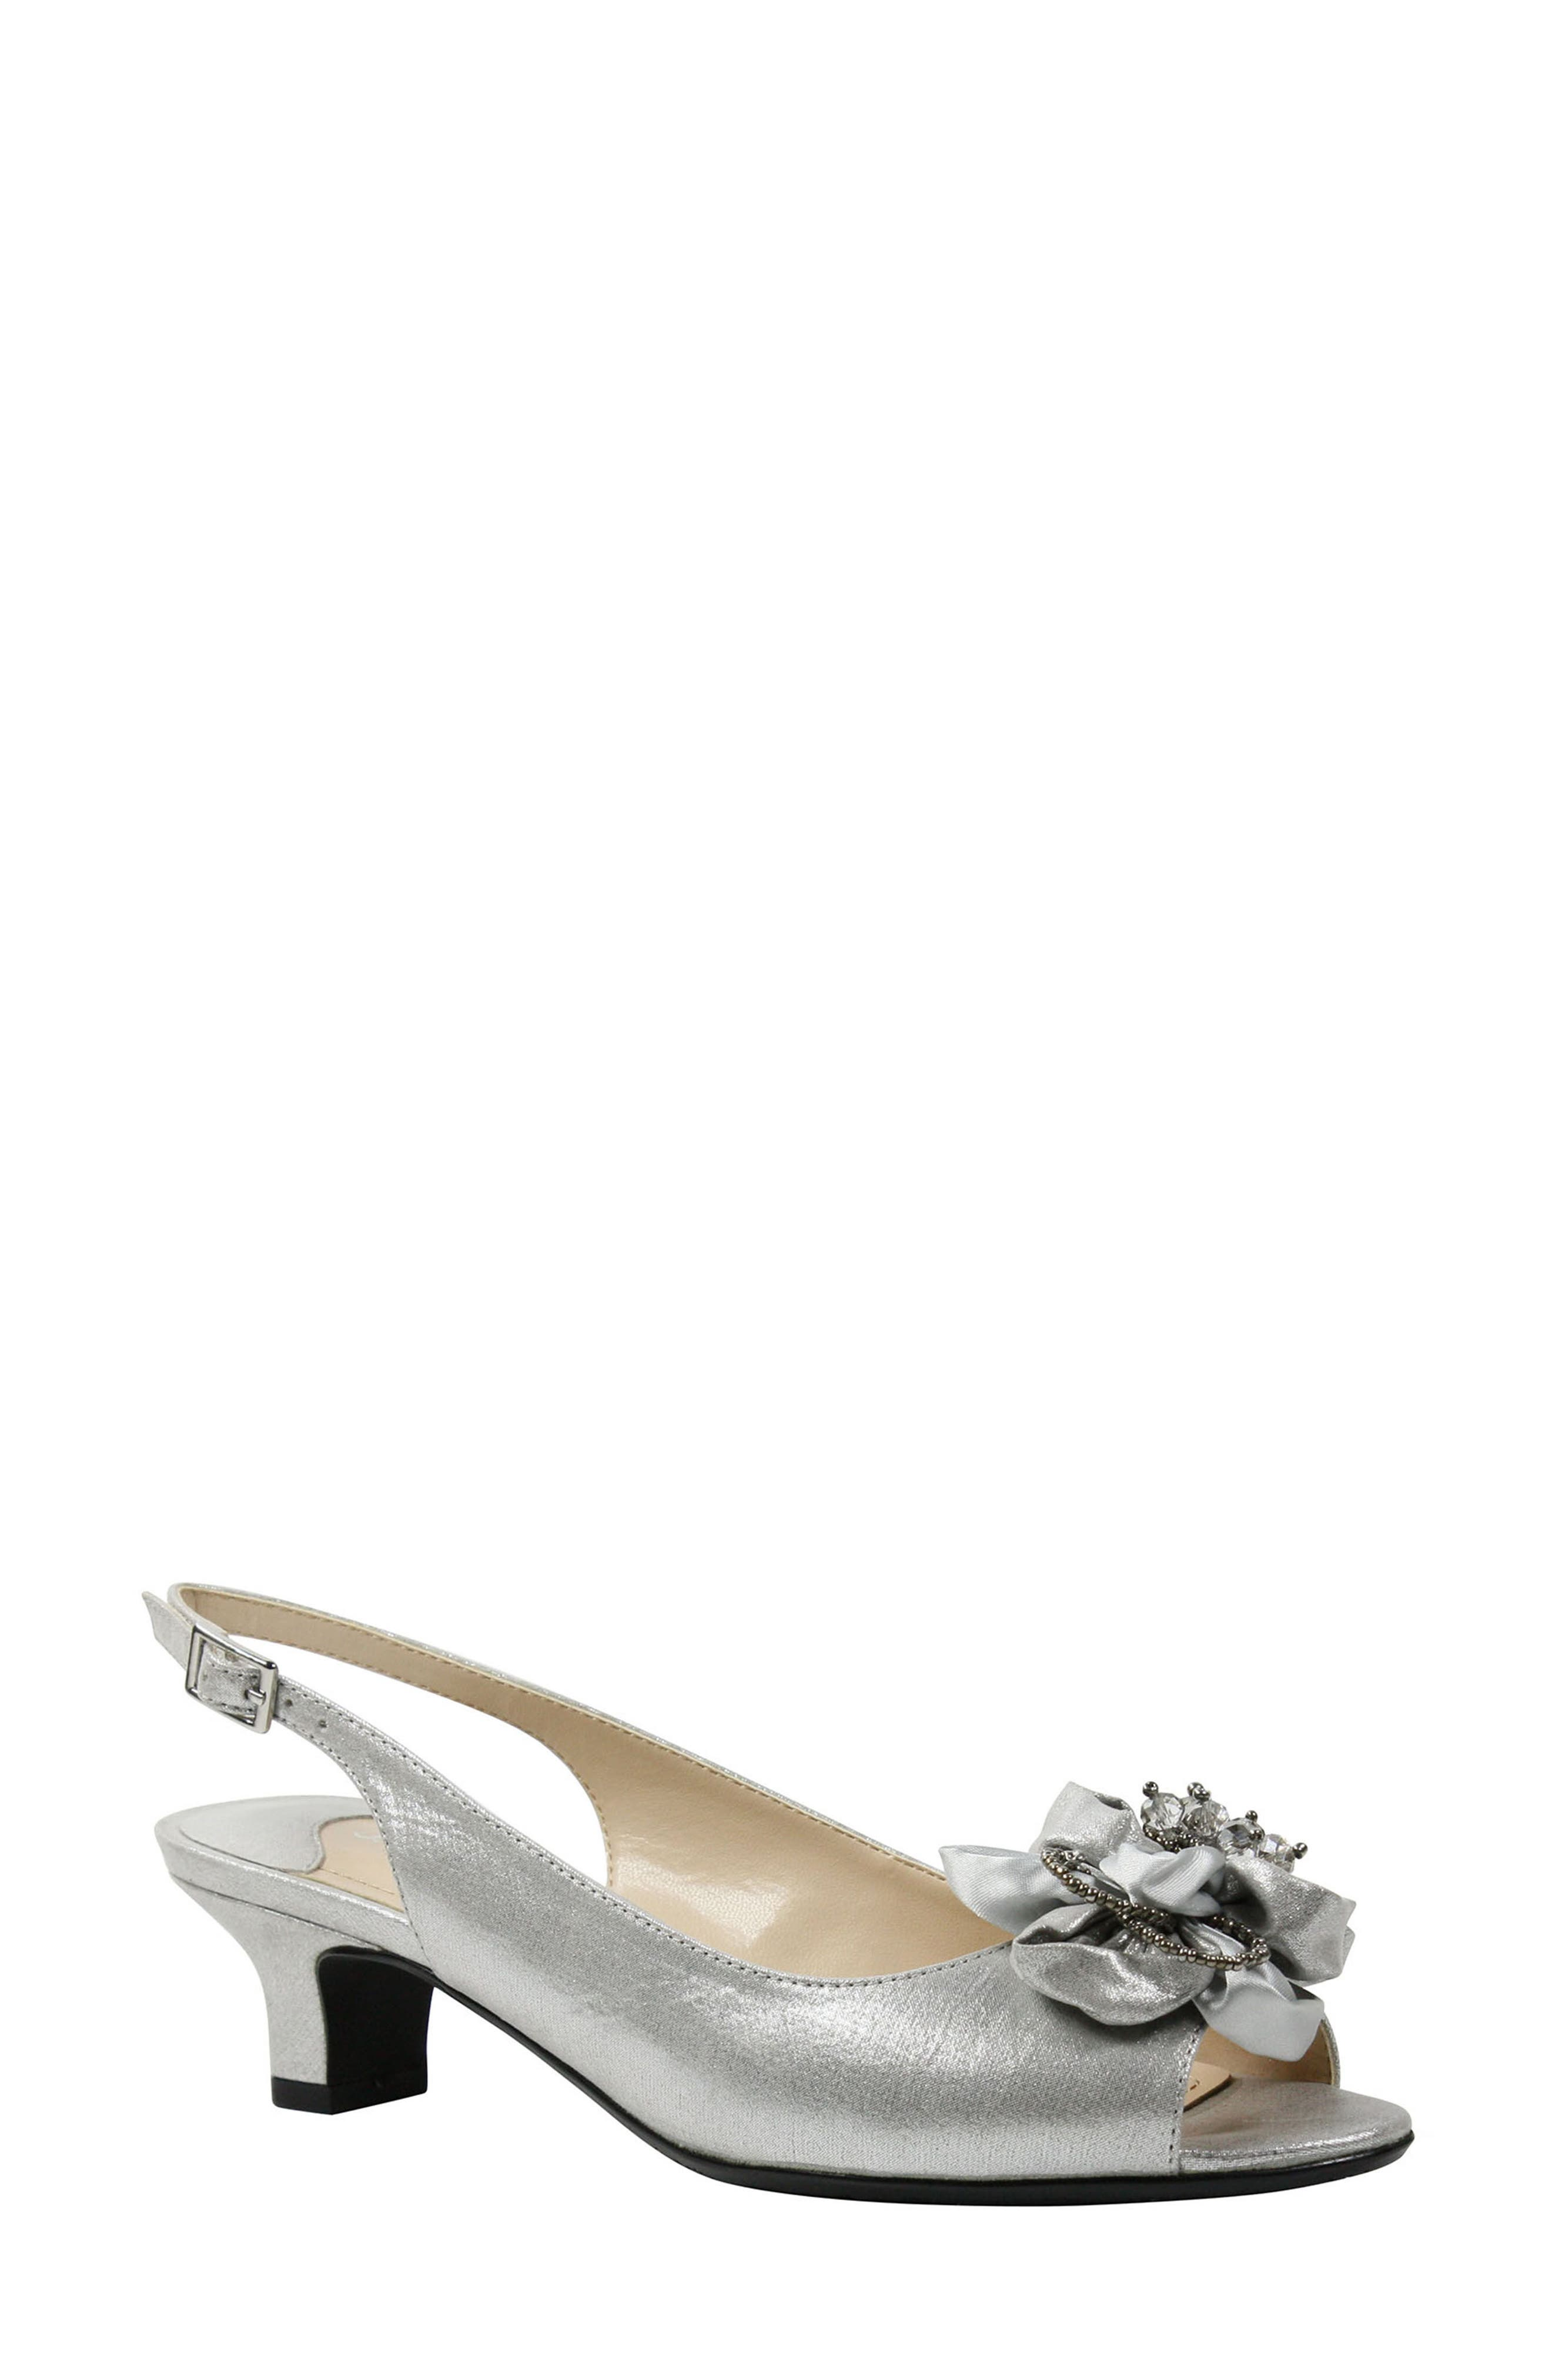 J. RENEÉ, Leonelle Slingback Crystal Embellished Sandal, Main thumbnail 1, color, SILVER SATIN